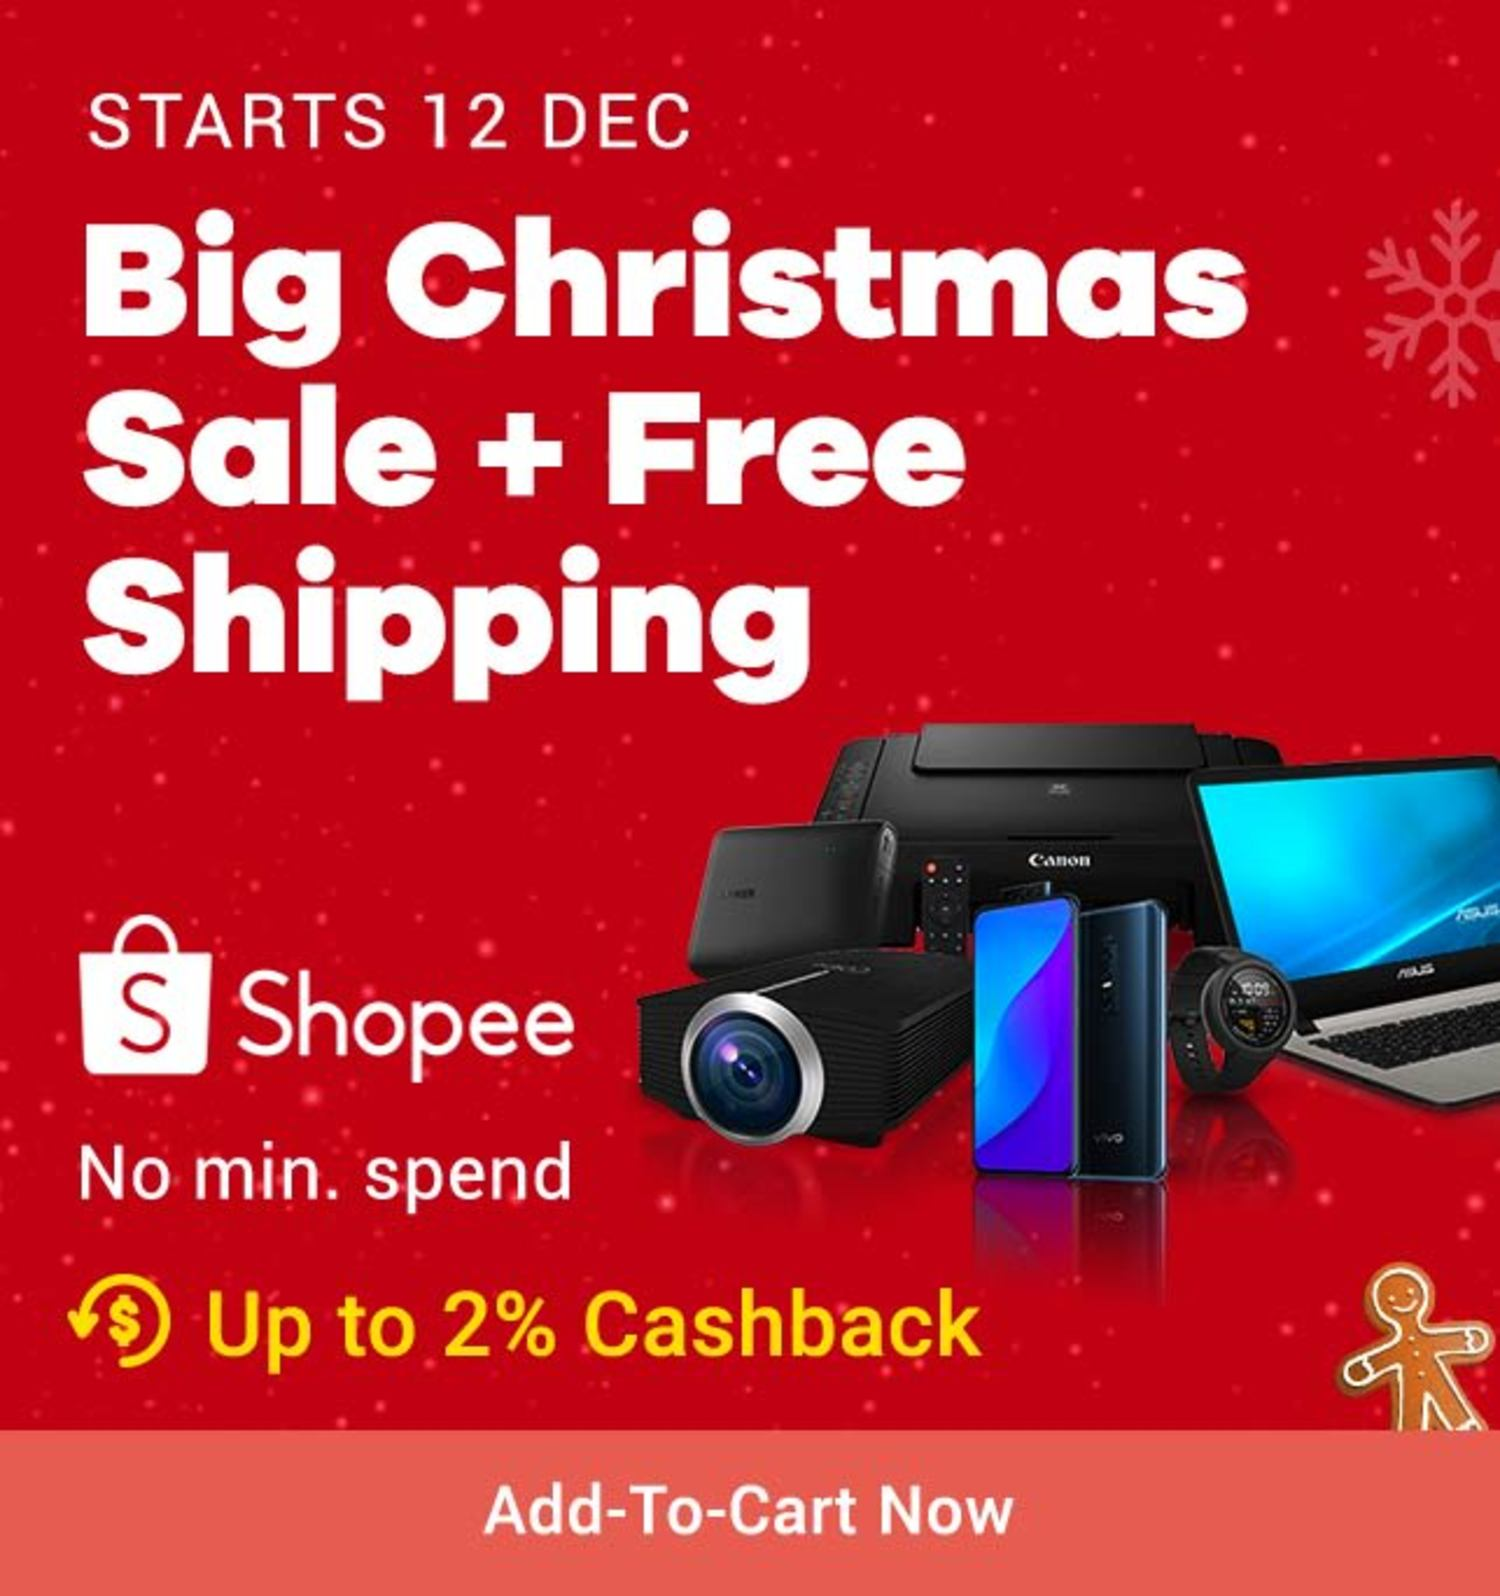 Shopee: Big Chritsmas Sale + Free Shipping